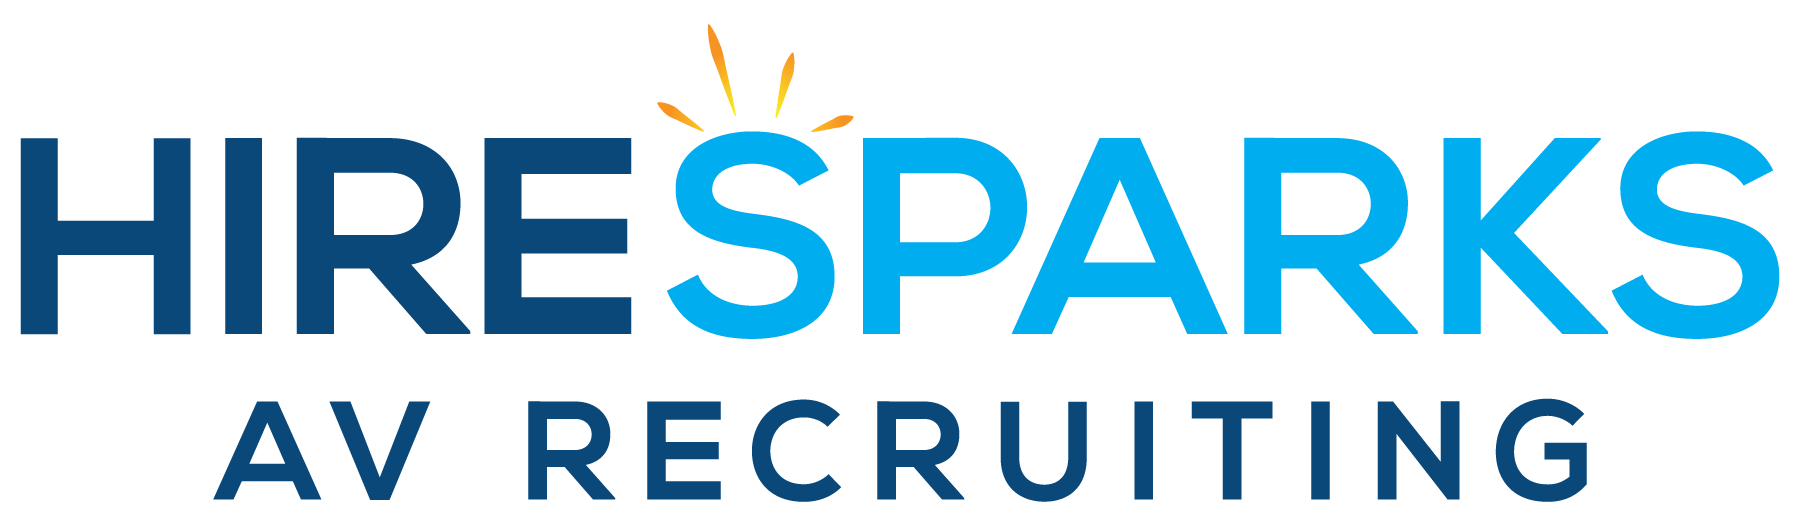 HireSparks Audiovisual Recruiting